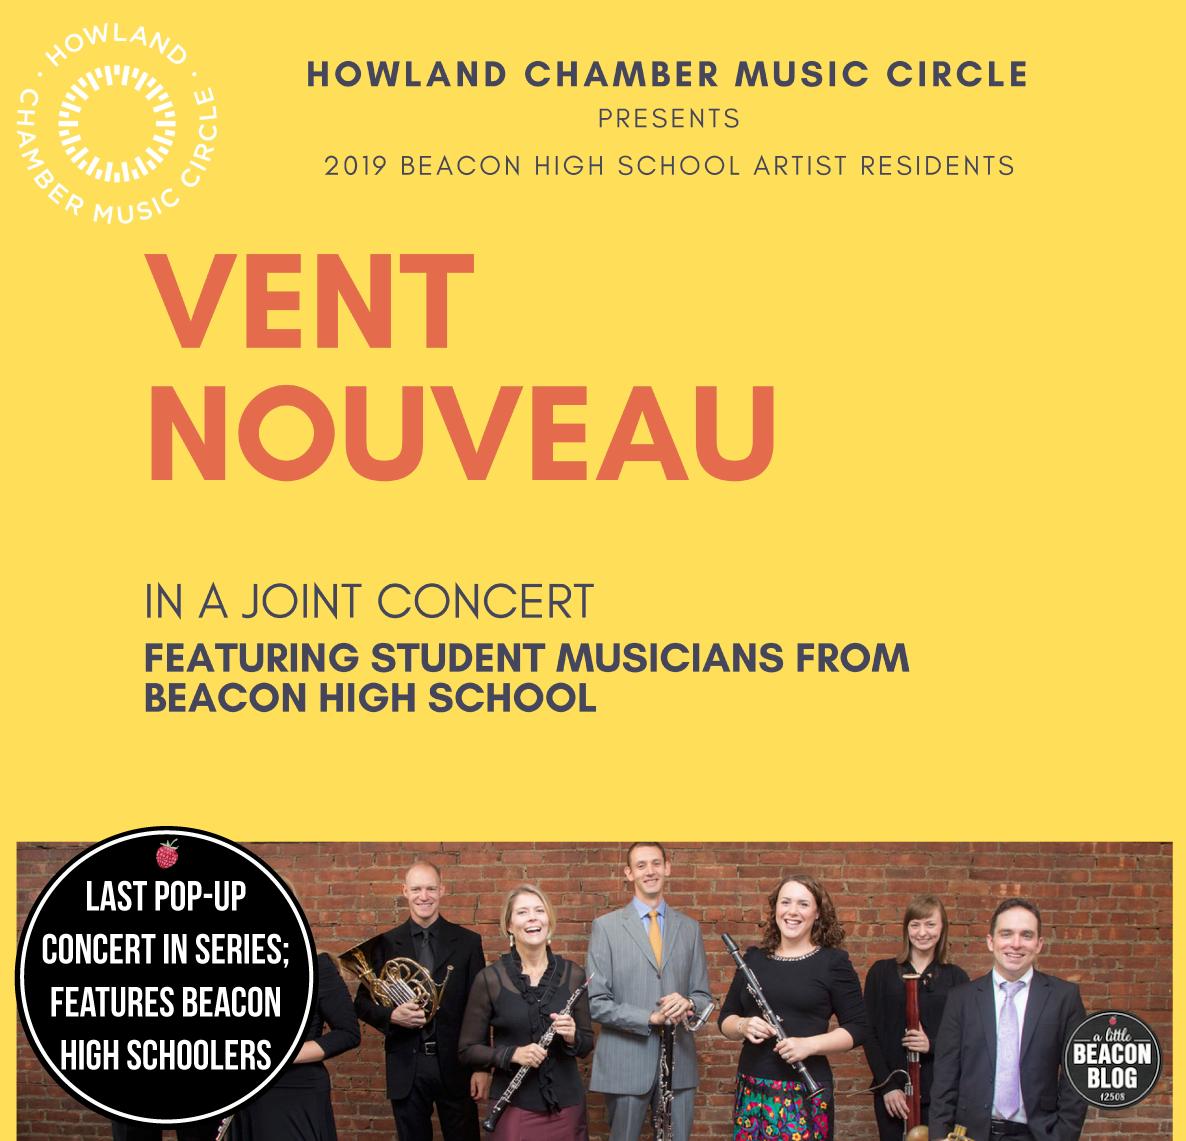 vent-nouveau-joint-concert-howland-chamber-music-circle.png